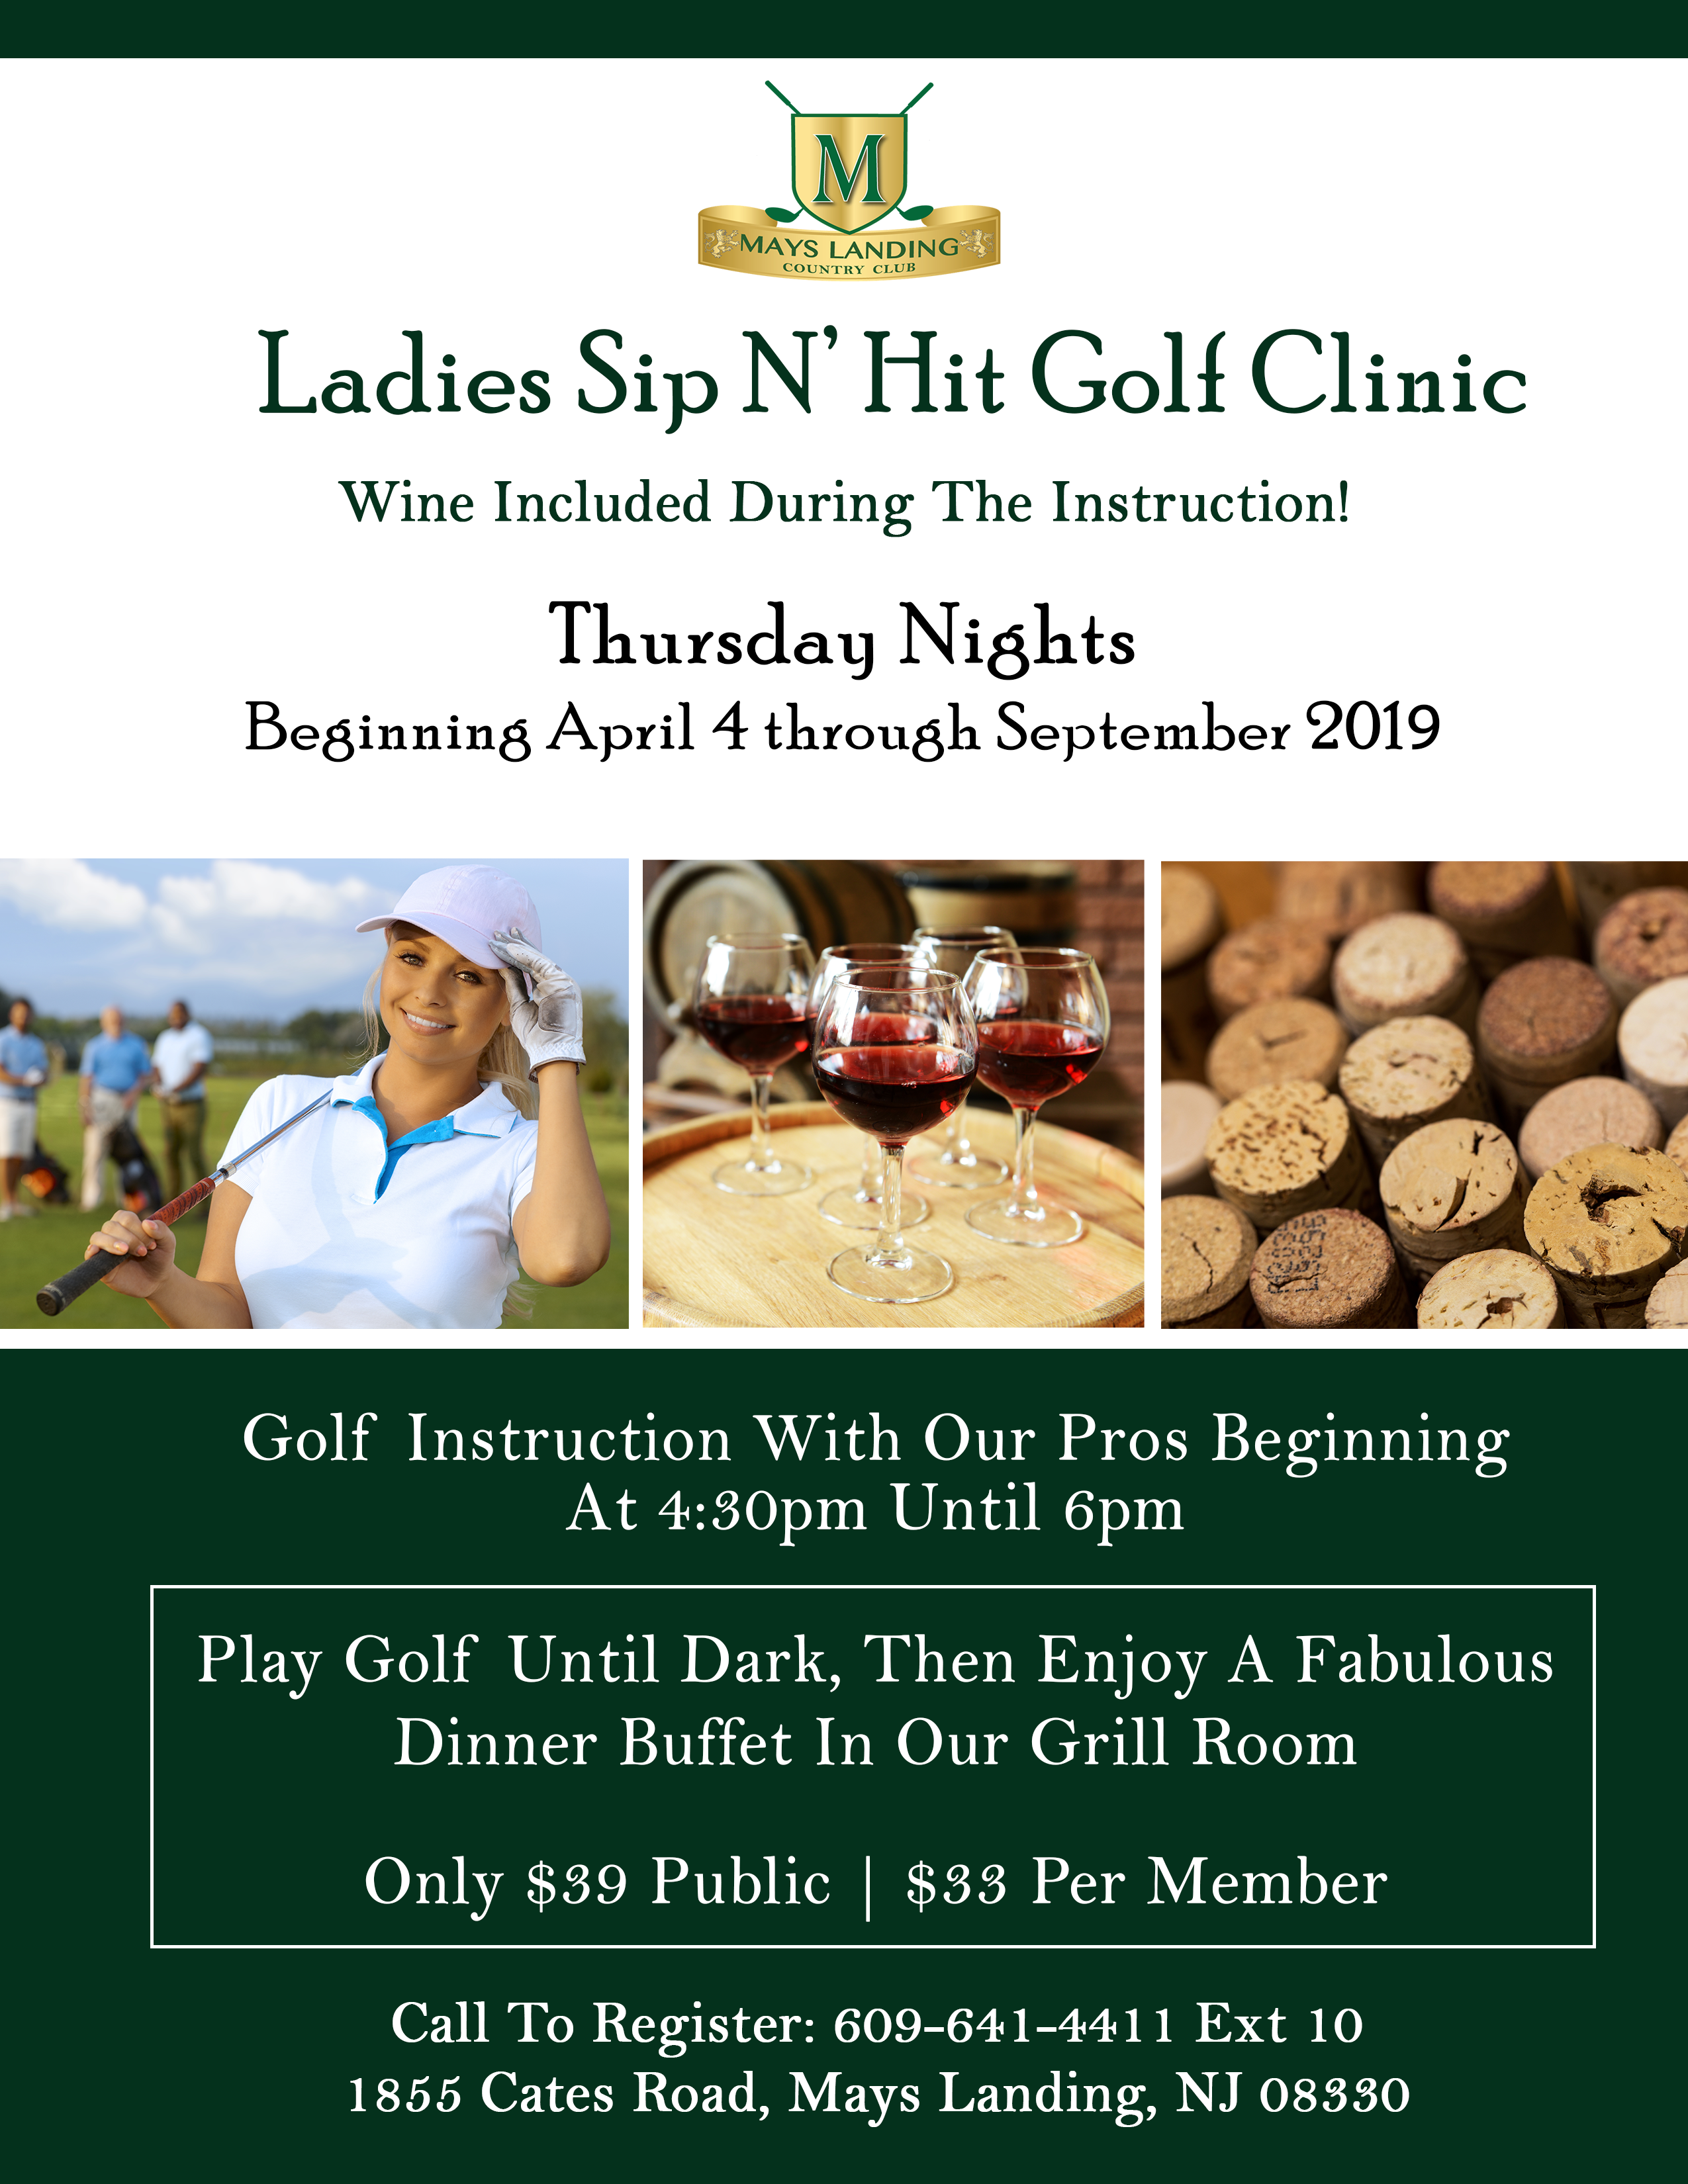 Ladies Sip N' Hit Golf Clinic  Wine Included During The Instruction! Thursday Nights  Beginning April 4  through September 2019  Come Out And Join Us! Golf Instruction With Our Pros Beginning  At 4:30pm Until 6pm  Play Golf Until Dark, Then Enjoy A Fabulous Dinner Buffet In Our Grill Room  Only $39 Public / $33 Per Member  Call To Register: 609-641-4411 Ext 10 1855 Cates Road, Mays Landing, NJ 08330